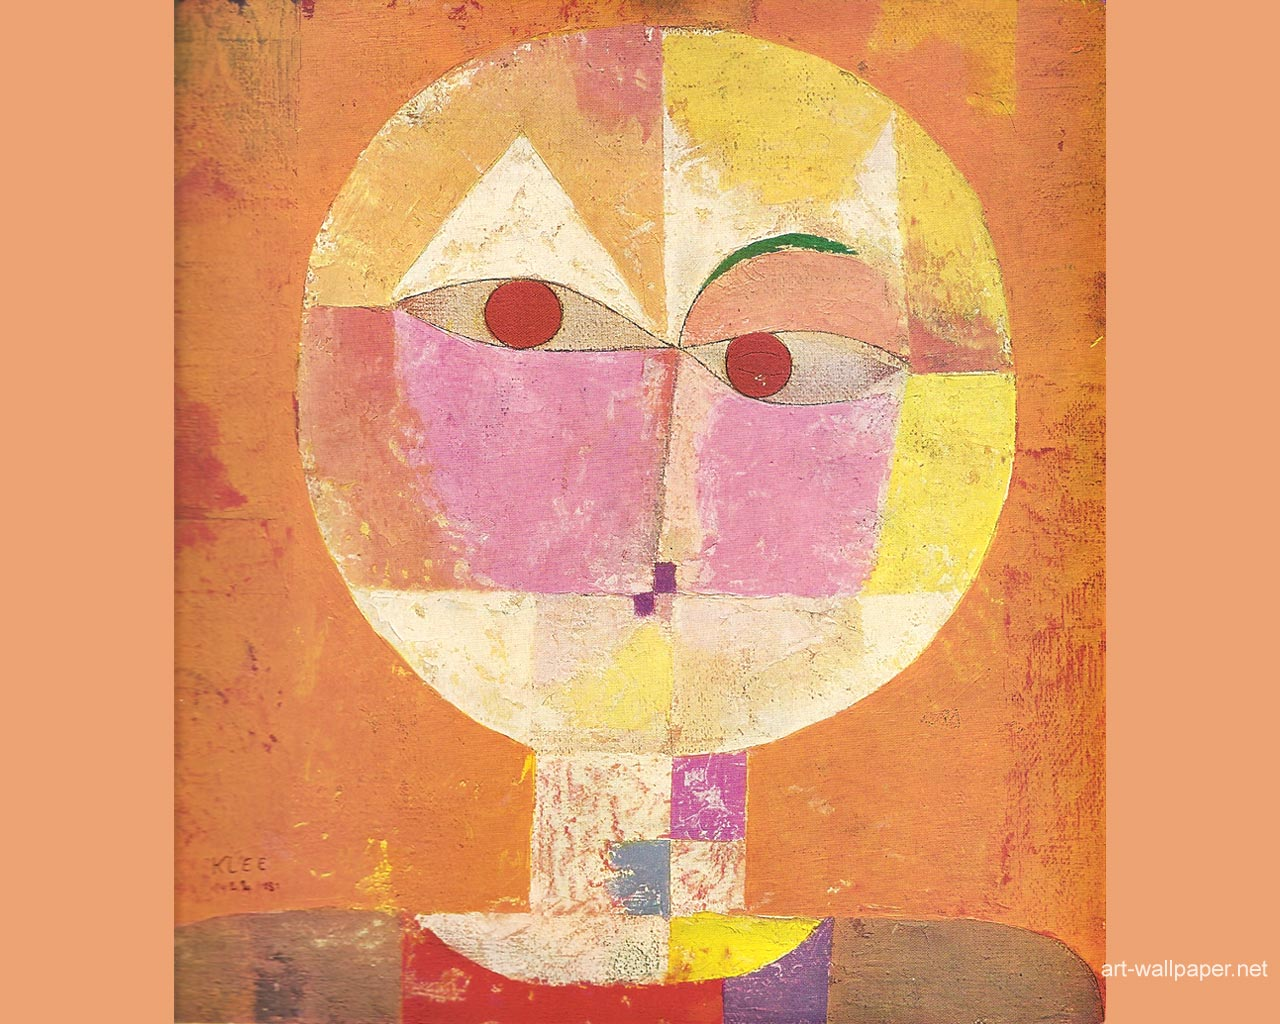 Keeping up with my Joneses: EXPLORE ART project: Paul Klee